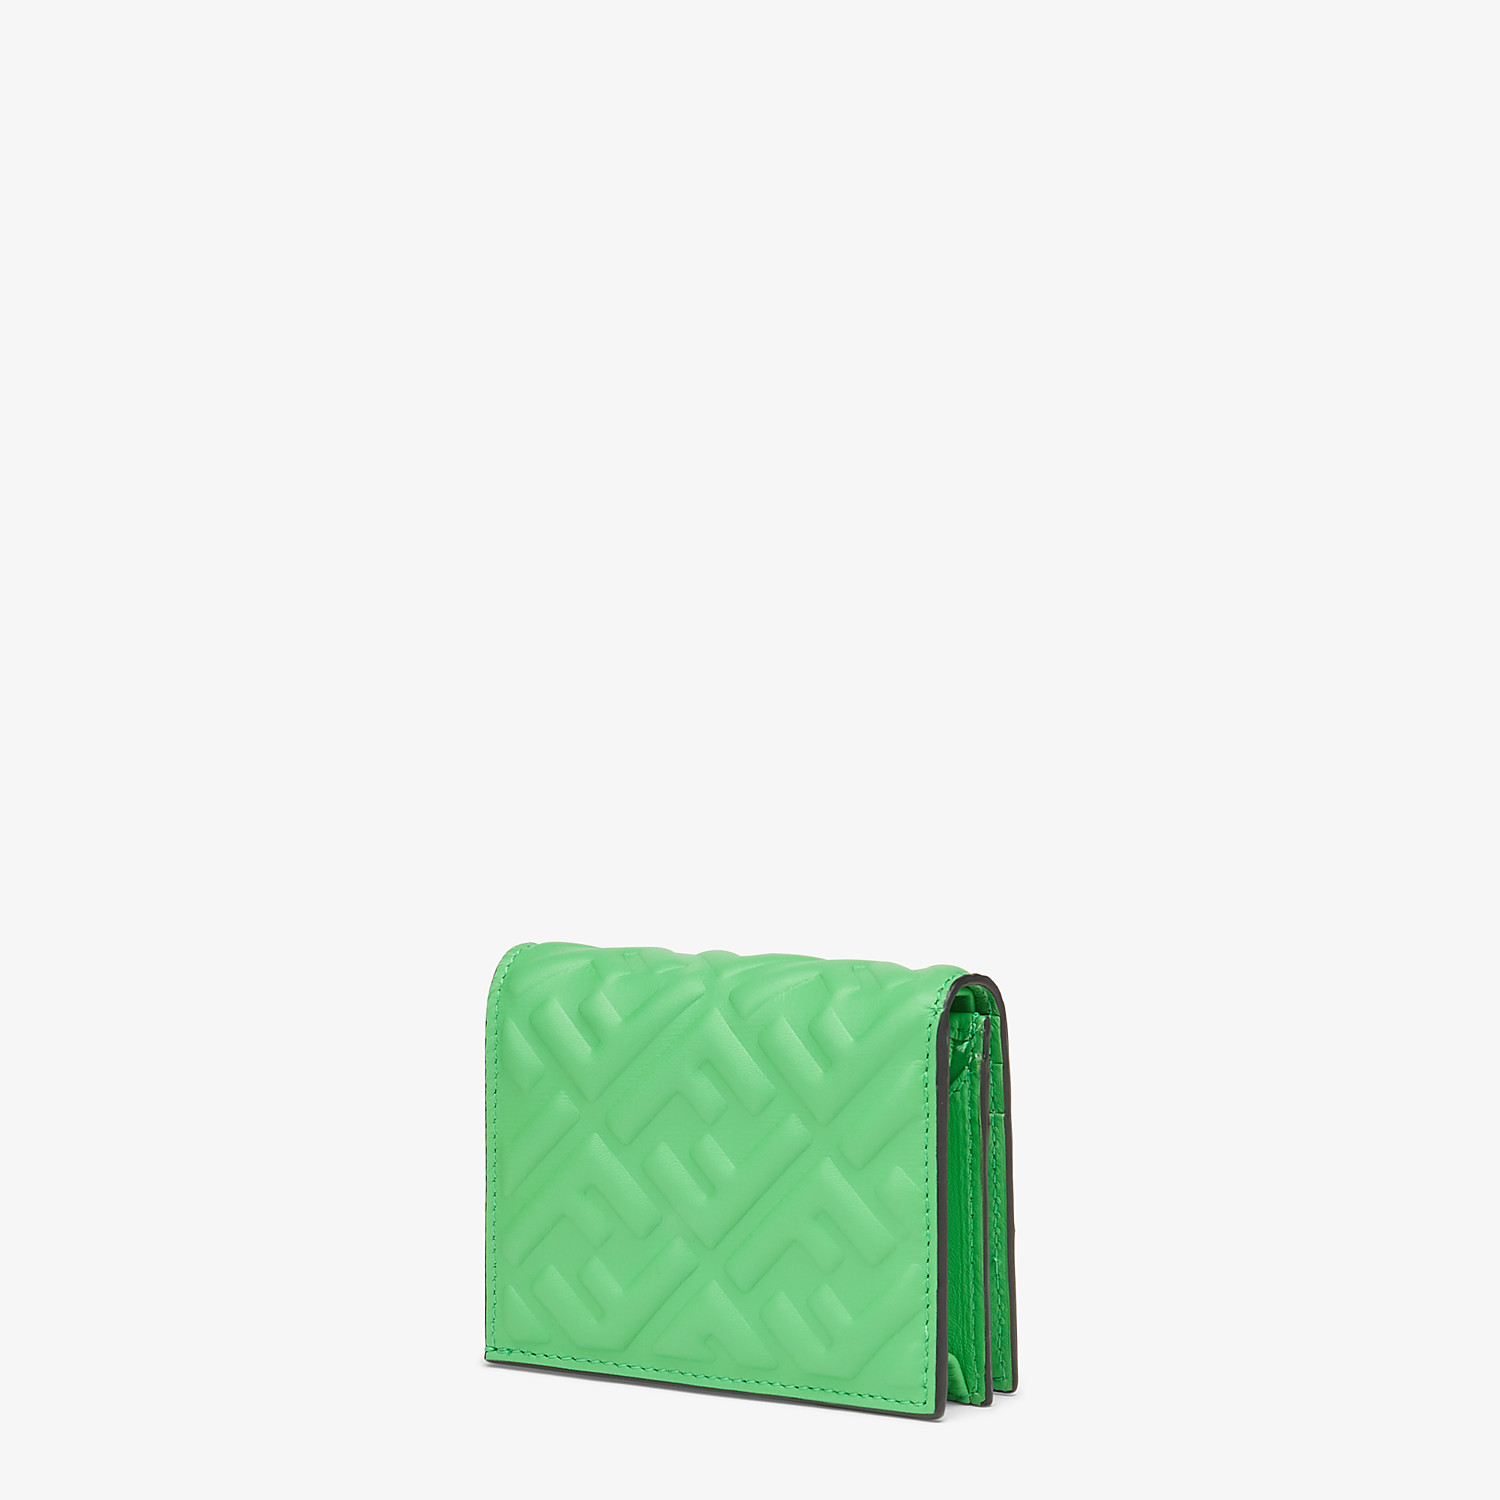 FENDI SMALL WALLET - Green nappa leather wallet - view 2 detail